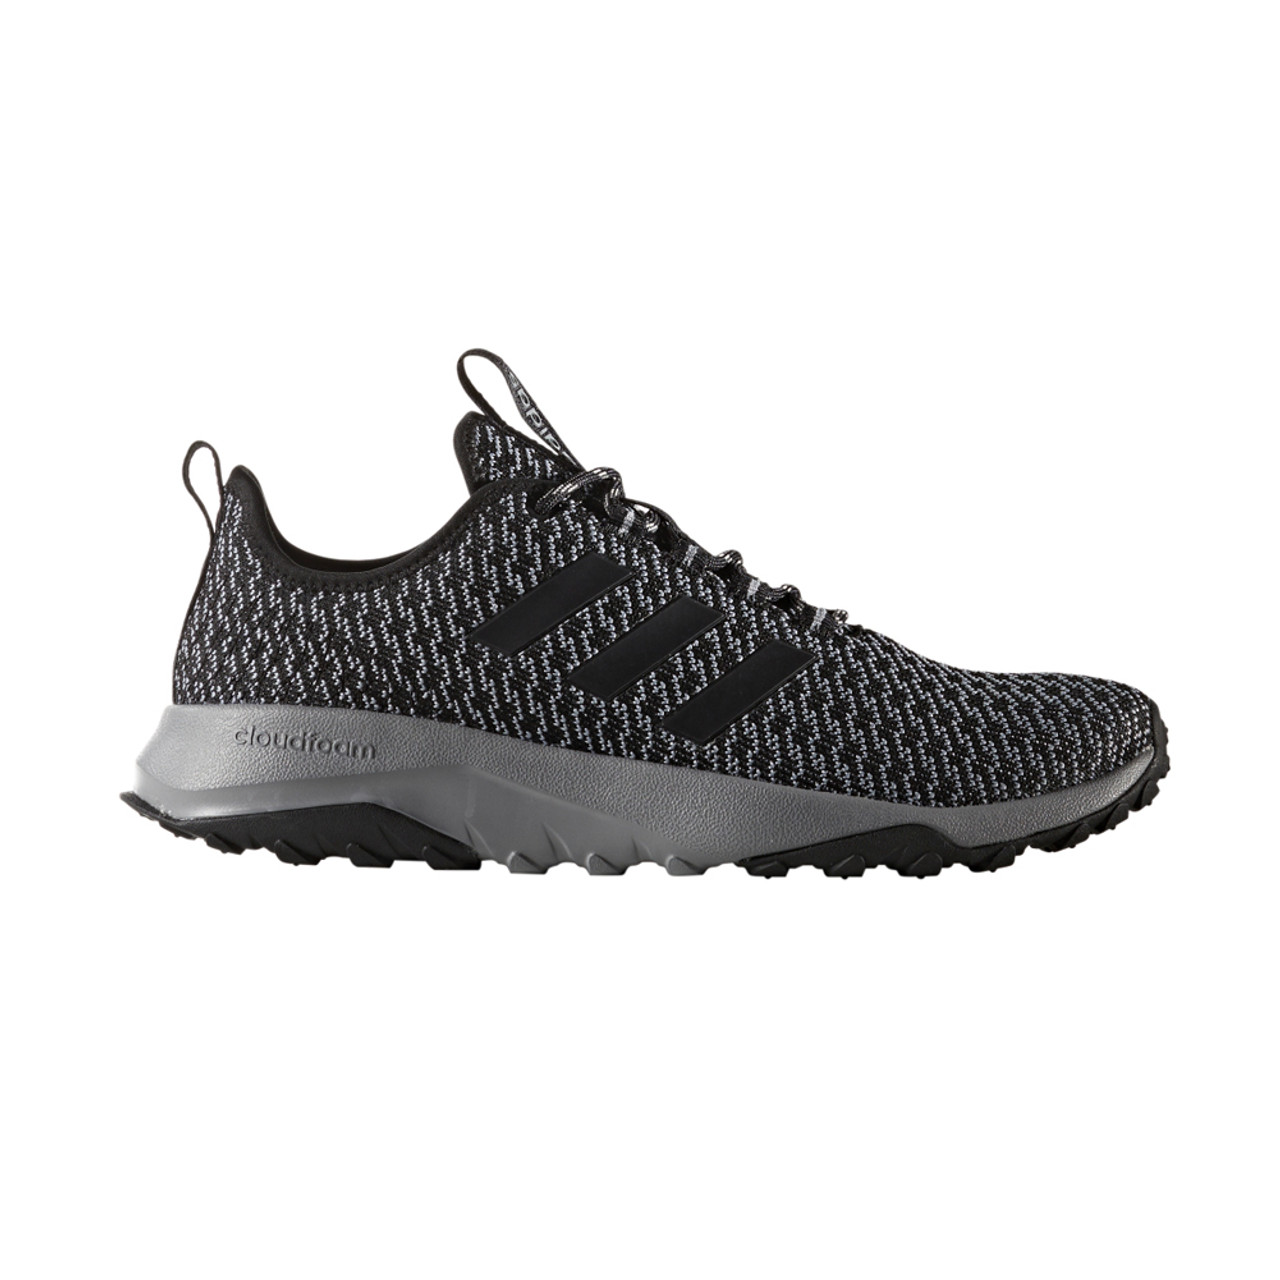 hot sale online 5e016 25491 Adidas Mens Cloudfoam Superflex TR Running Shoe BlackGrey - Shop now   Shoolu.